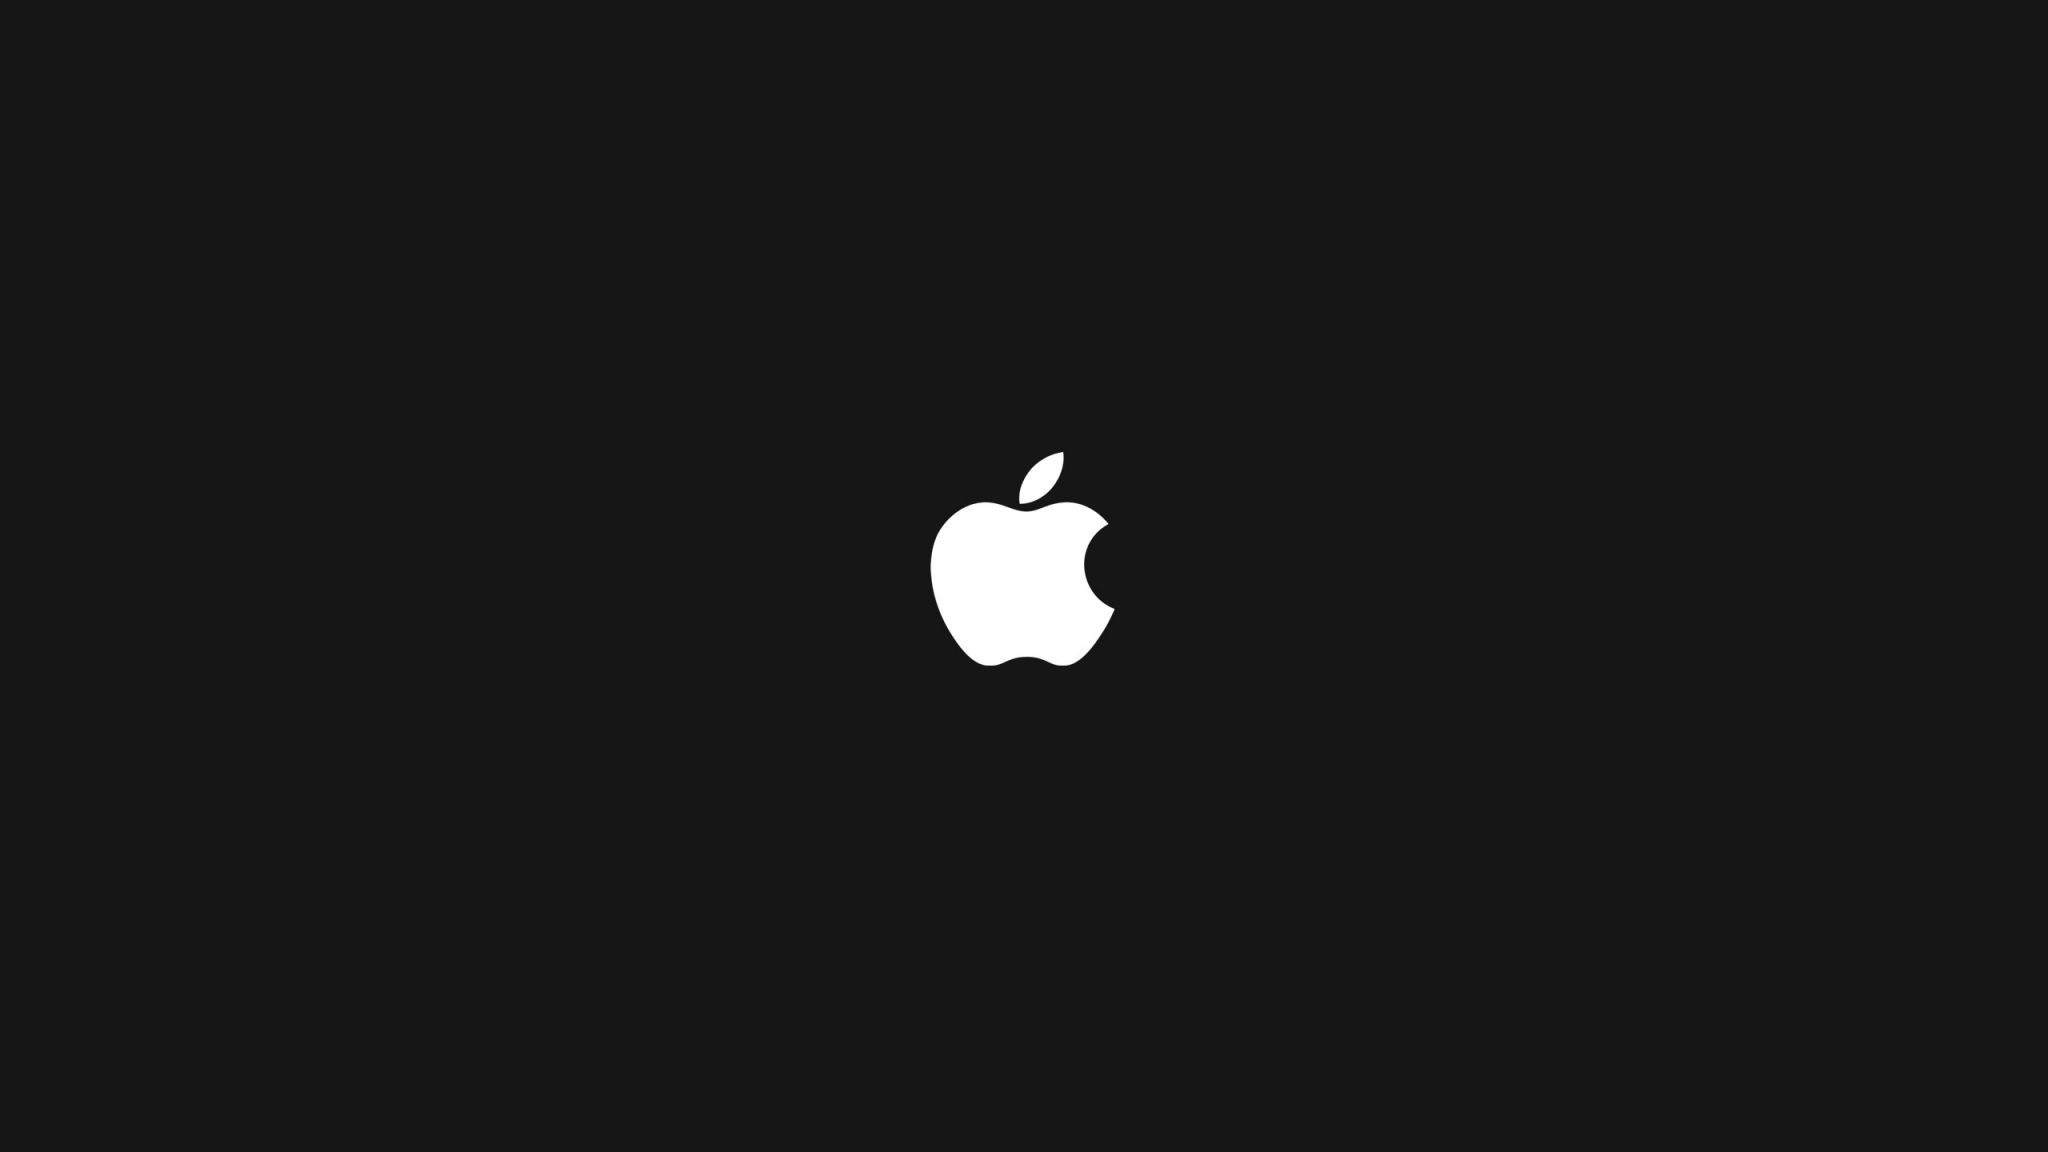 Apple Hd Widescreen Wallpapers For Laptop Macbook Air Wallpaper Apple Logo Wallpaper Apple Wallpaper Apple logo apple wallpaper hd 1080p